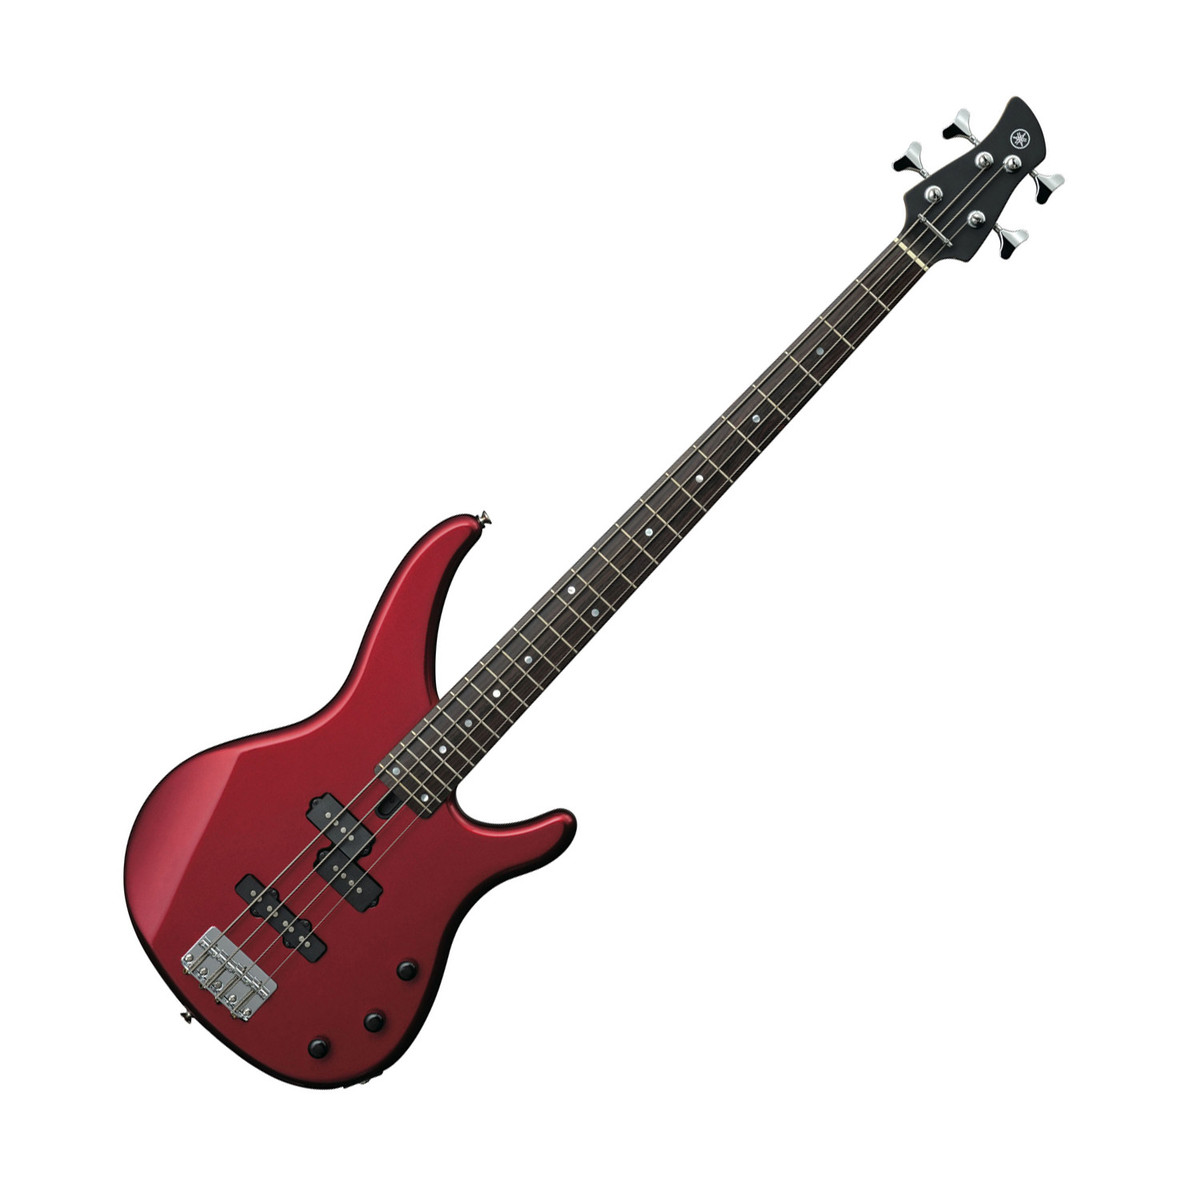 yamaha trbx174 electric bass guitar red metallic b stock at gear4music. Black Bedroom Furniture Sets. Home Design Ideas